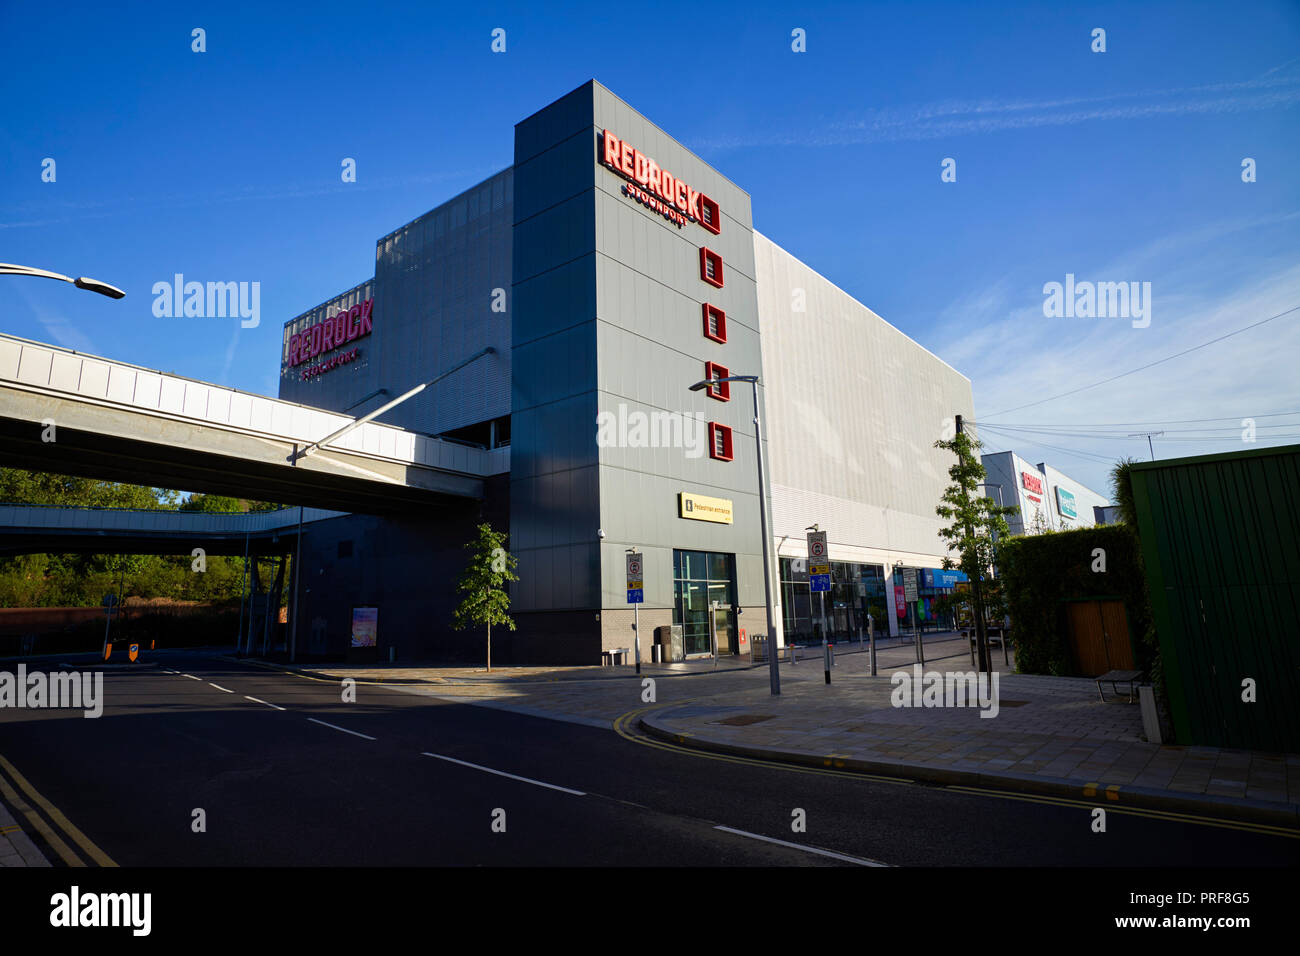 Exterior of Redrock Stockport that won carbuncle of the year in 2018 - Stock Image